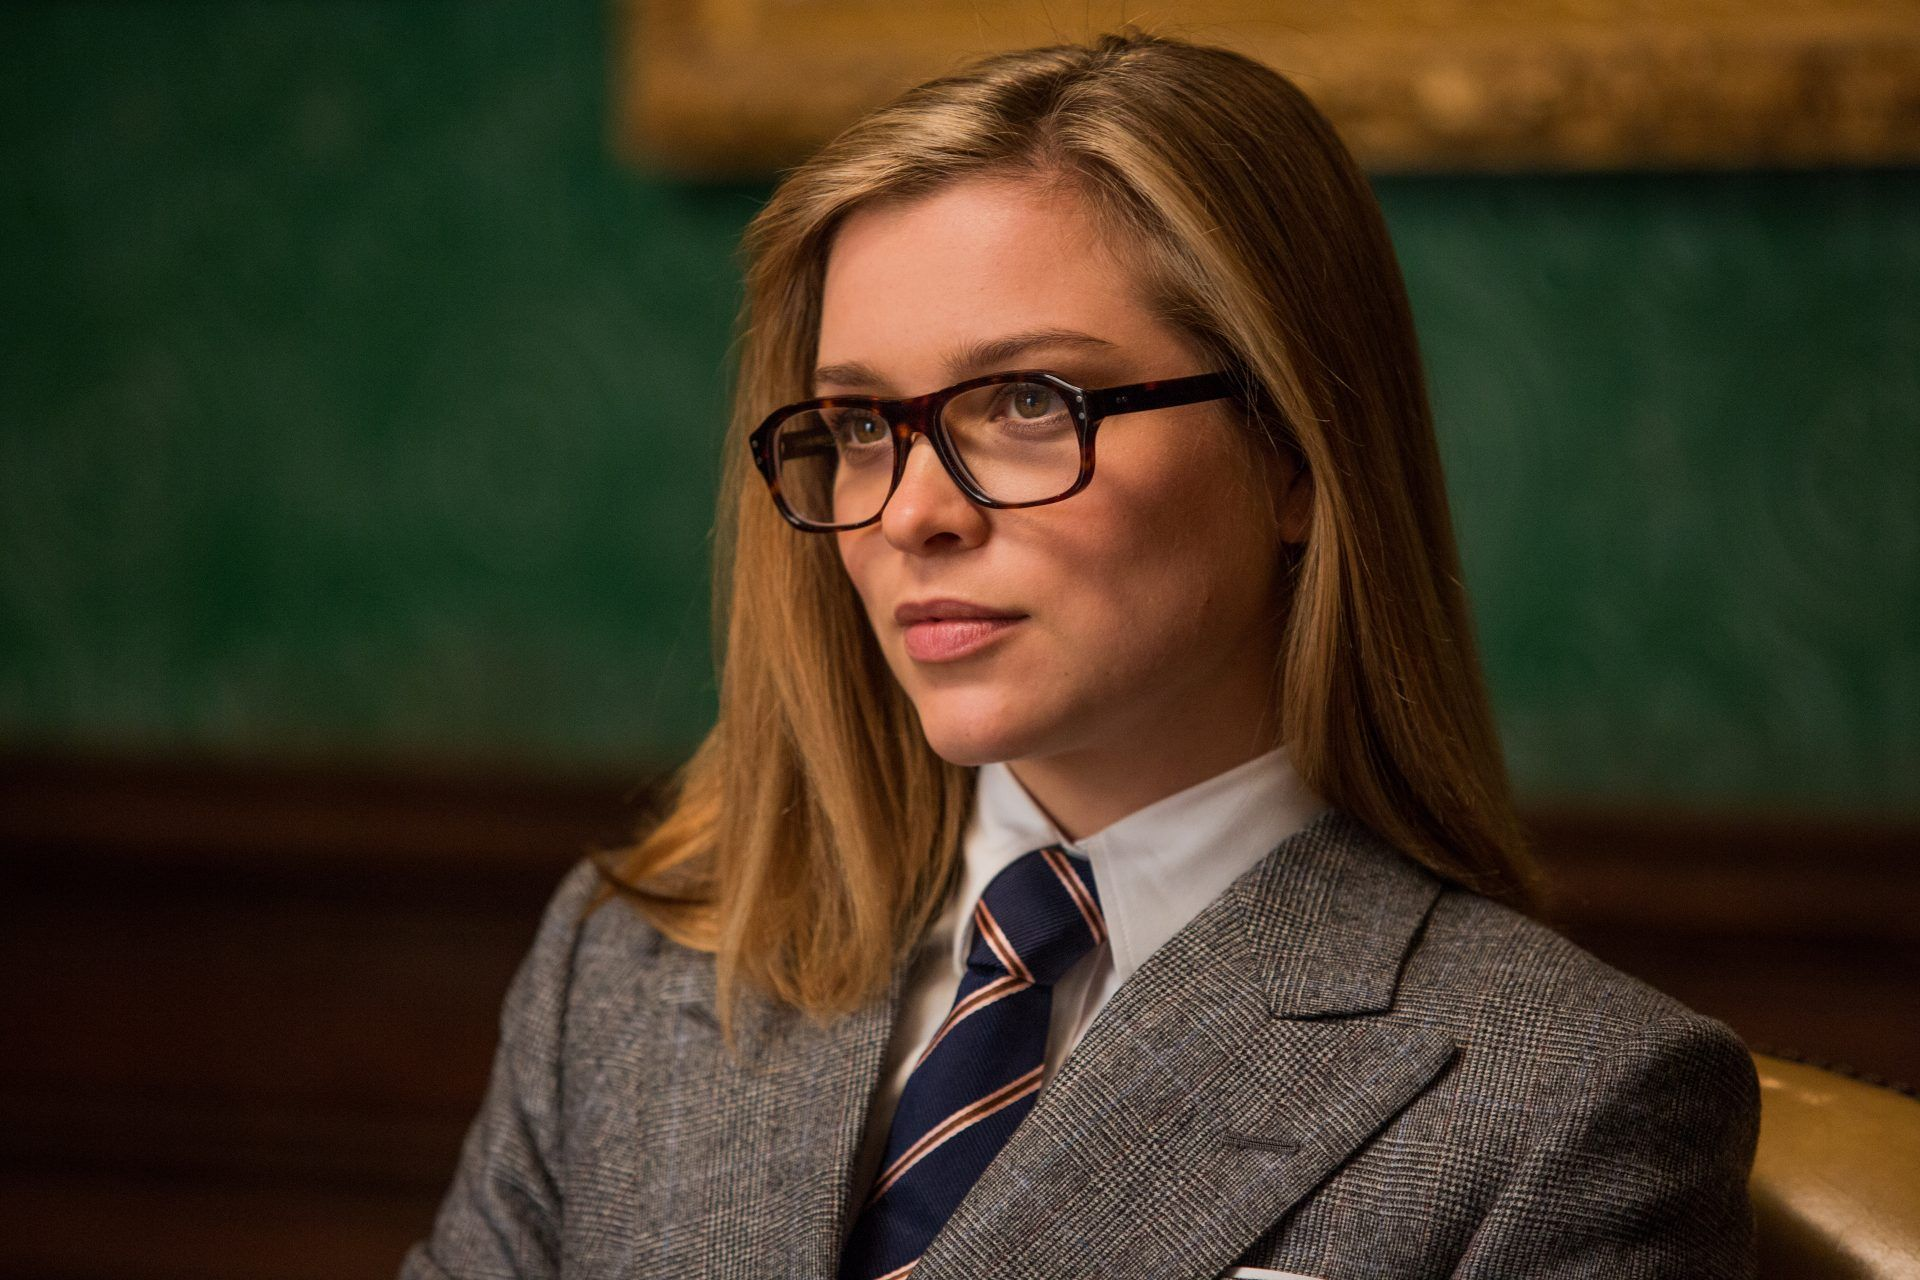 Roxy Kingsman | Looking smart | Kingsman, Women wearing ...